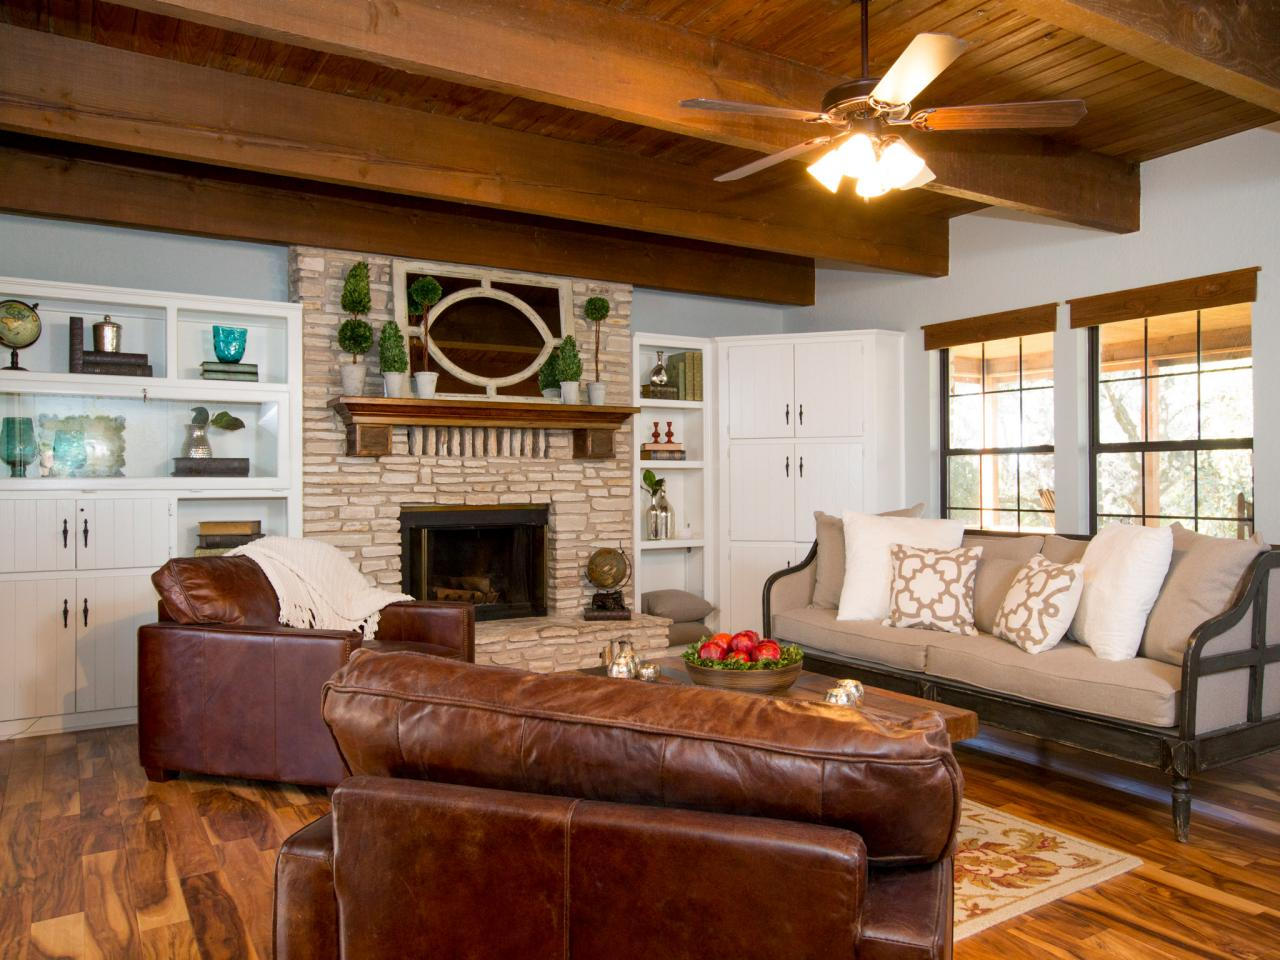 Chip And Joanna Gaines Transform A Barn Into A Rustic Home Perfect For Entertaining Hgtv 39 S